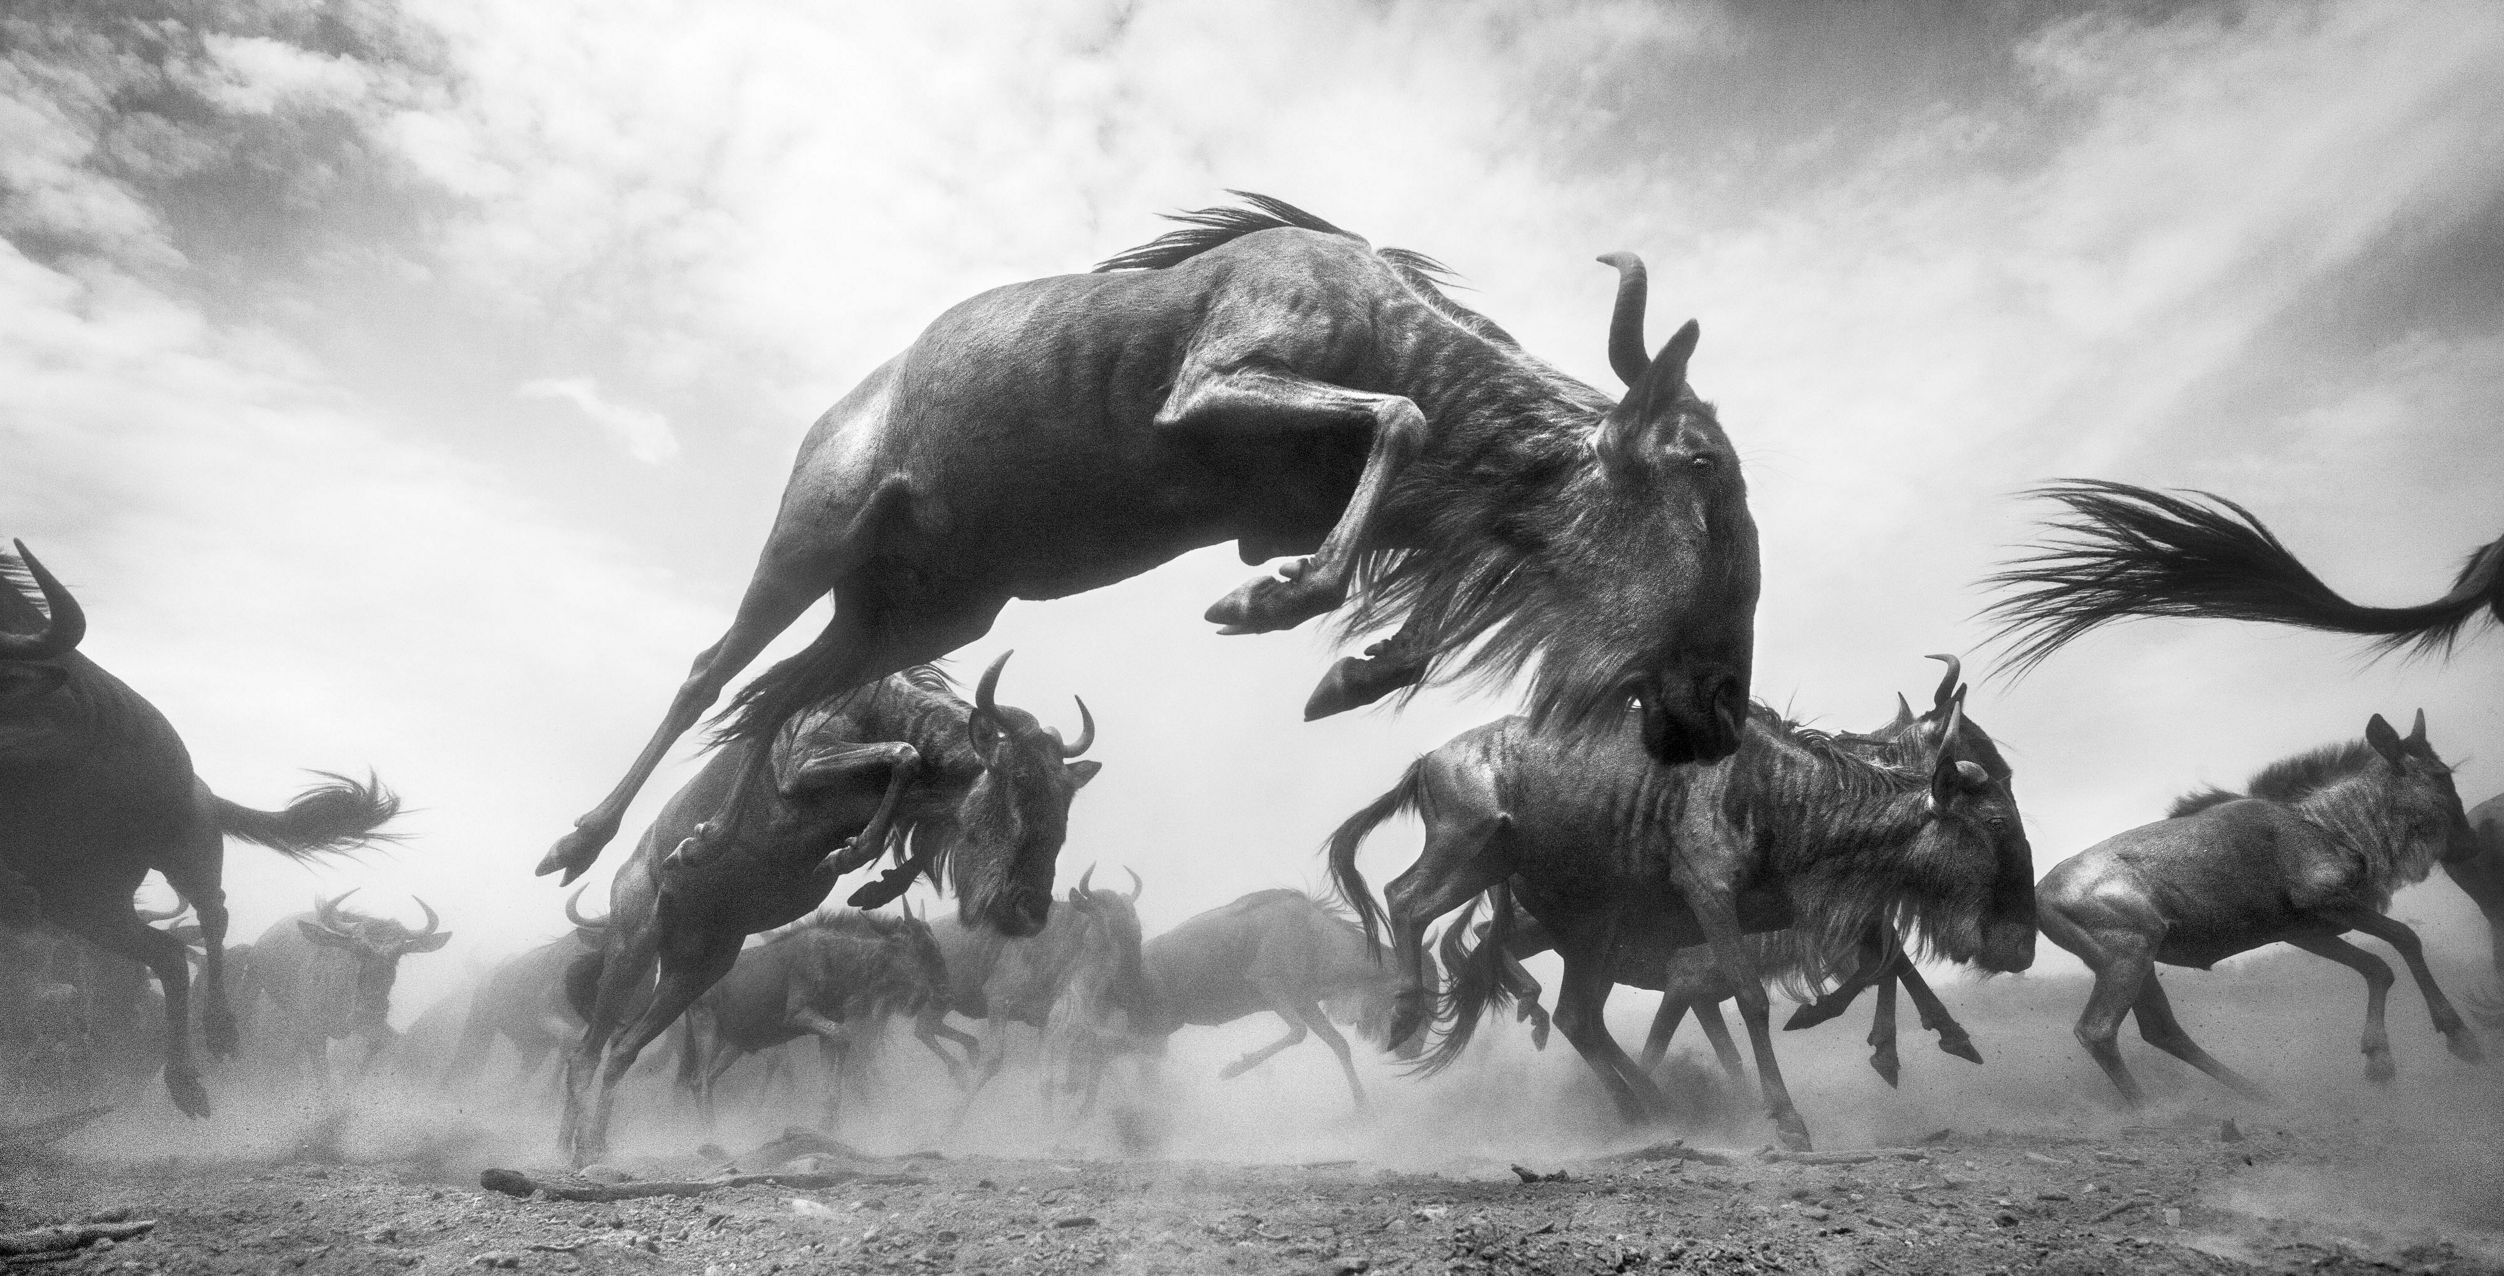 Maasai Mara National Reserve, Kenya. During the frenzy of crossing the Mara River, the wildebeests were leaping, kicking, scampering and bucking